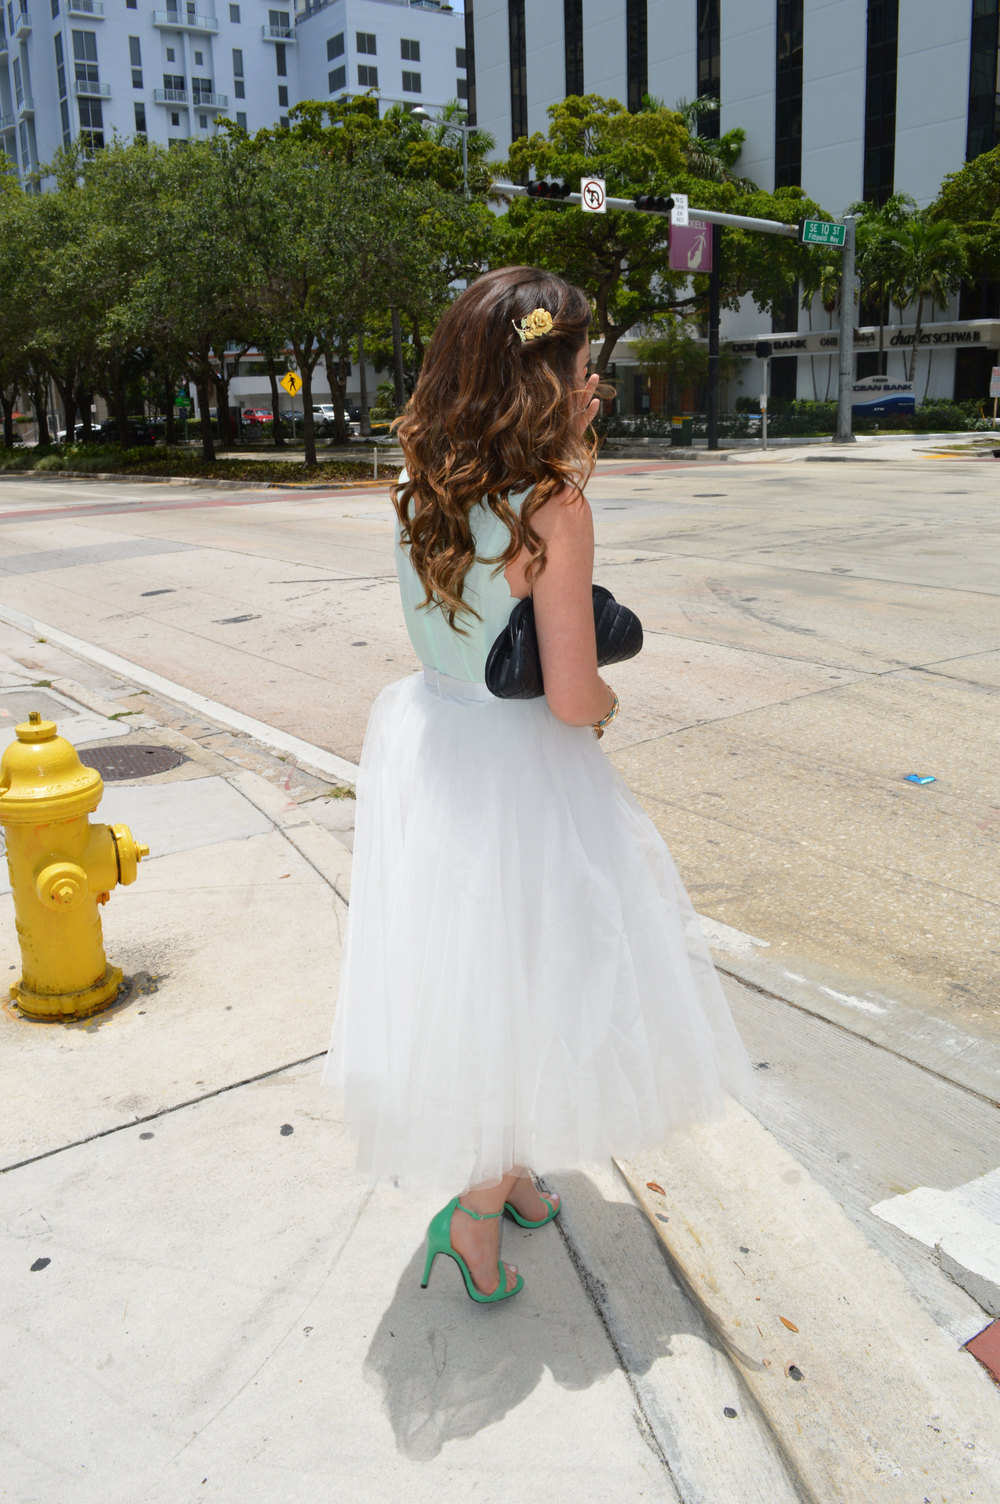 Space46-boutique-tulle-ballerina-white-skirt-bridal-shower-wiw-ootd-topshop-tank-green-zara-strappy-heels-style-blogger-miami-fl.jpeg